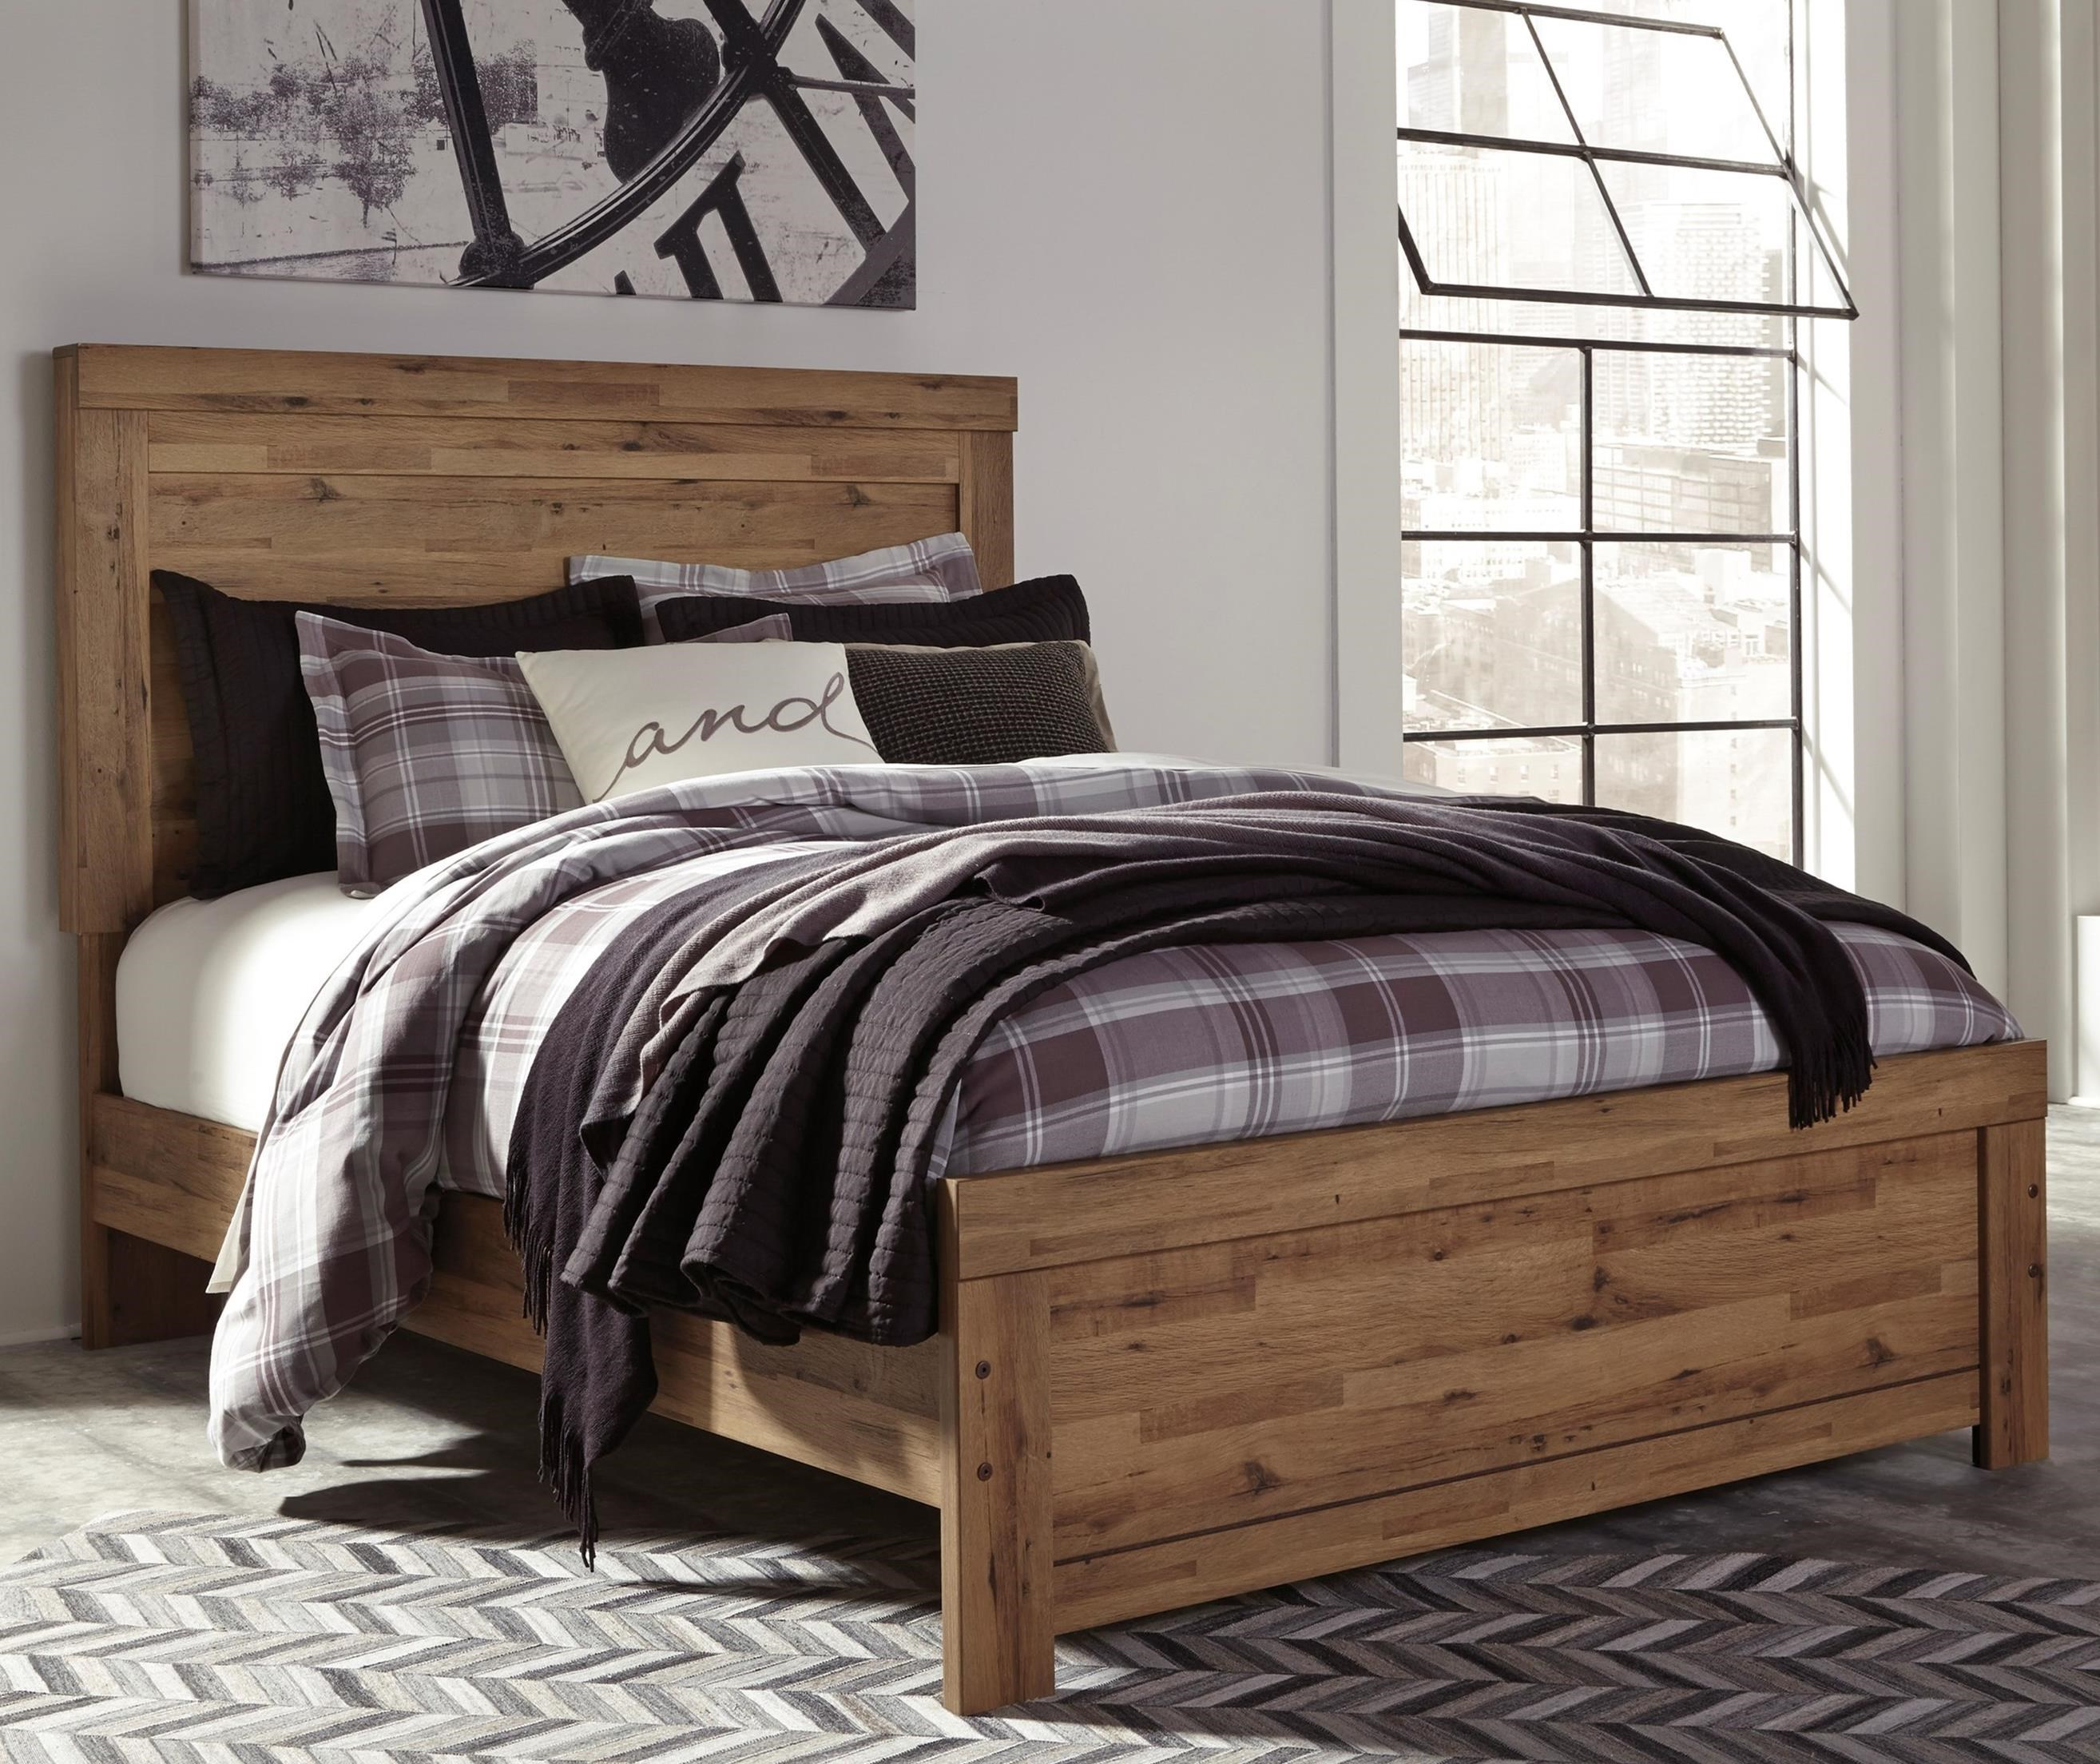 Signature design by ashley cinrey queen panel bed item number b369 77